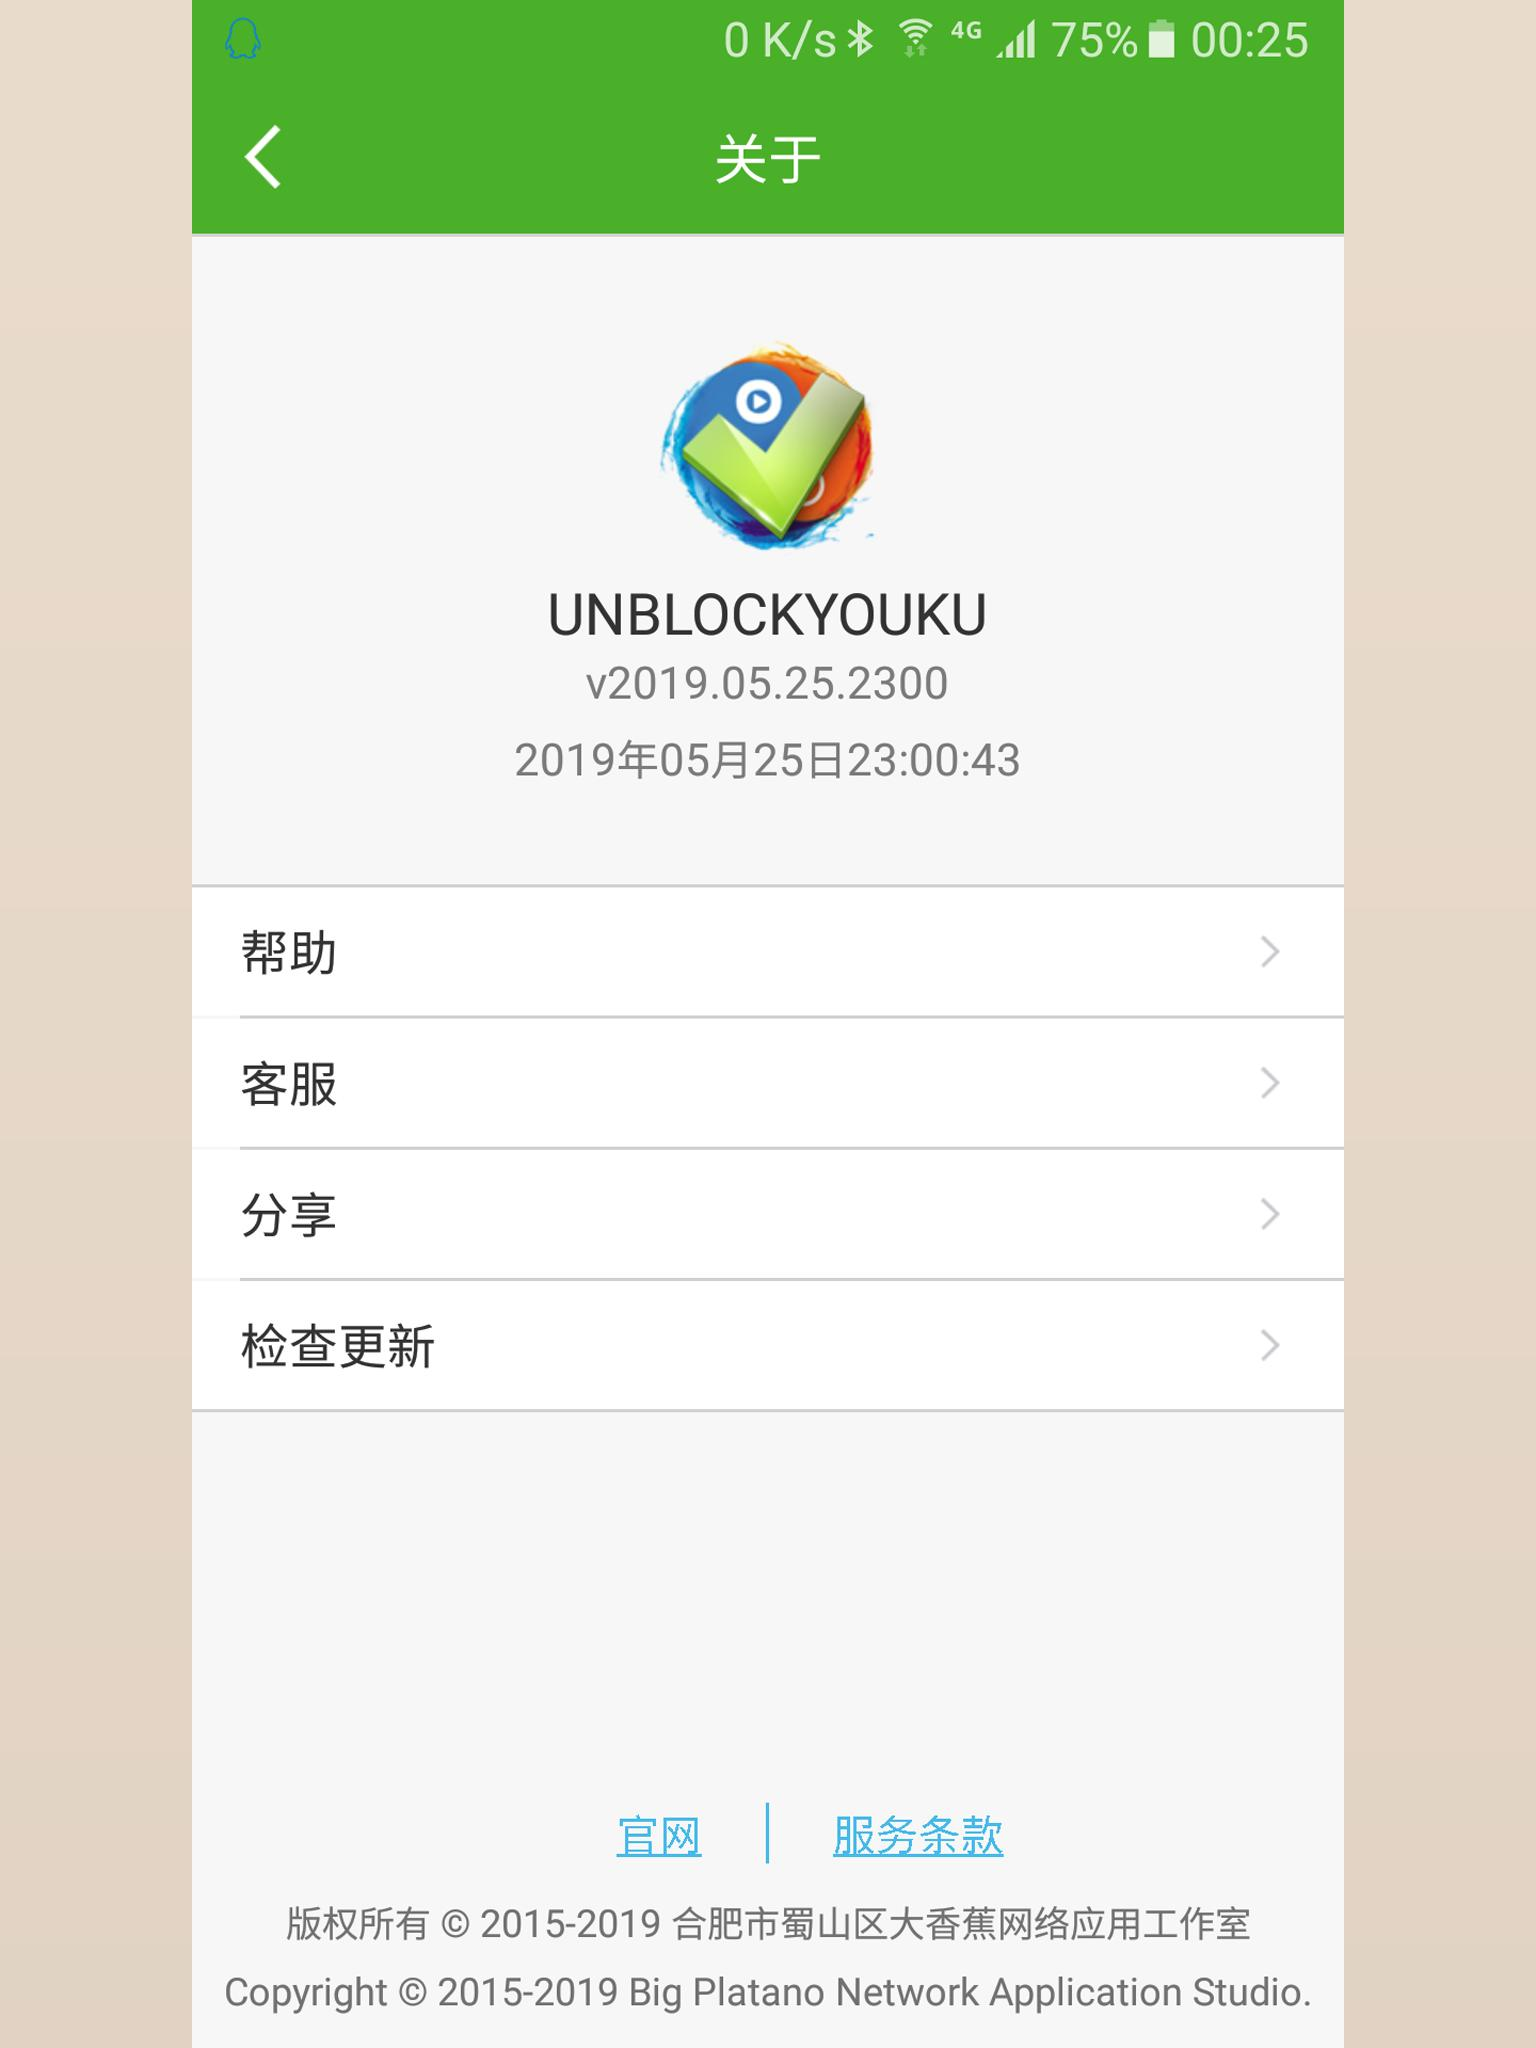 UNBLOCKYOUKU for Android - APK Download